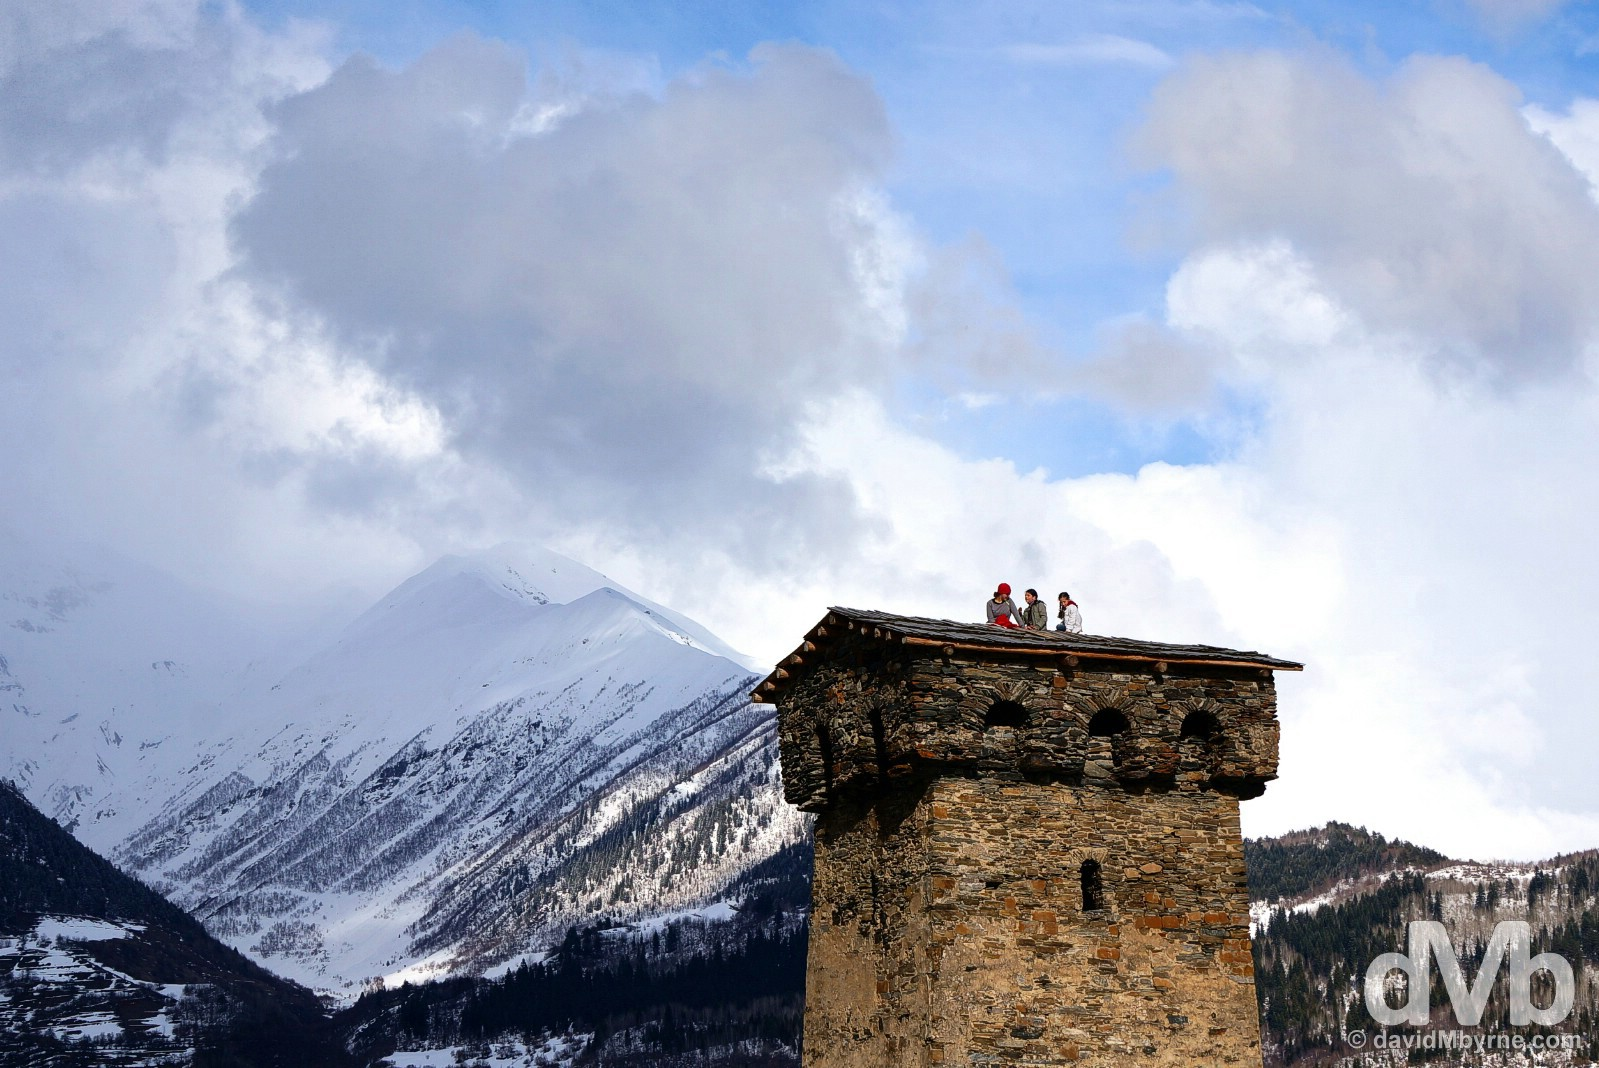 Sitting atop one of the distinctive Svan Towers in the highland town of Mestia in the Caucasus Mountains in northwest Georgia. March 21, 2015.